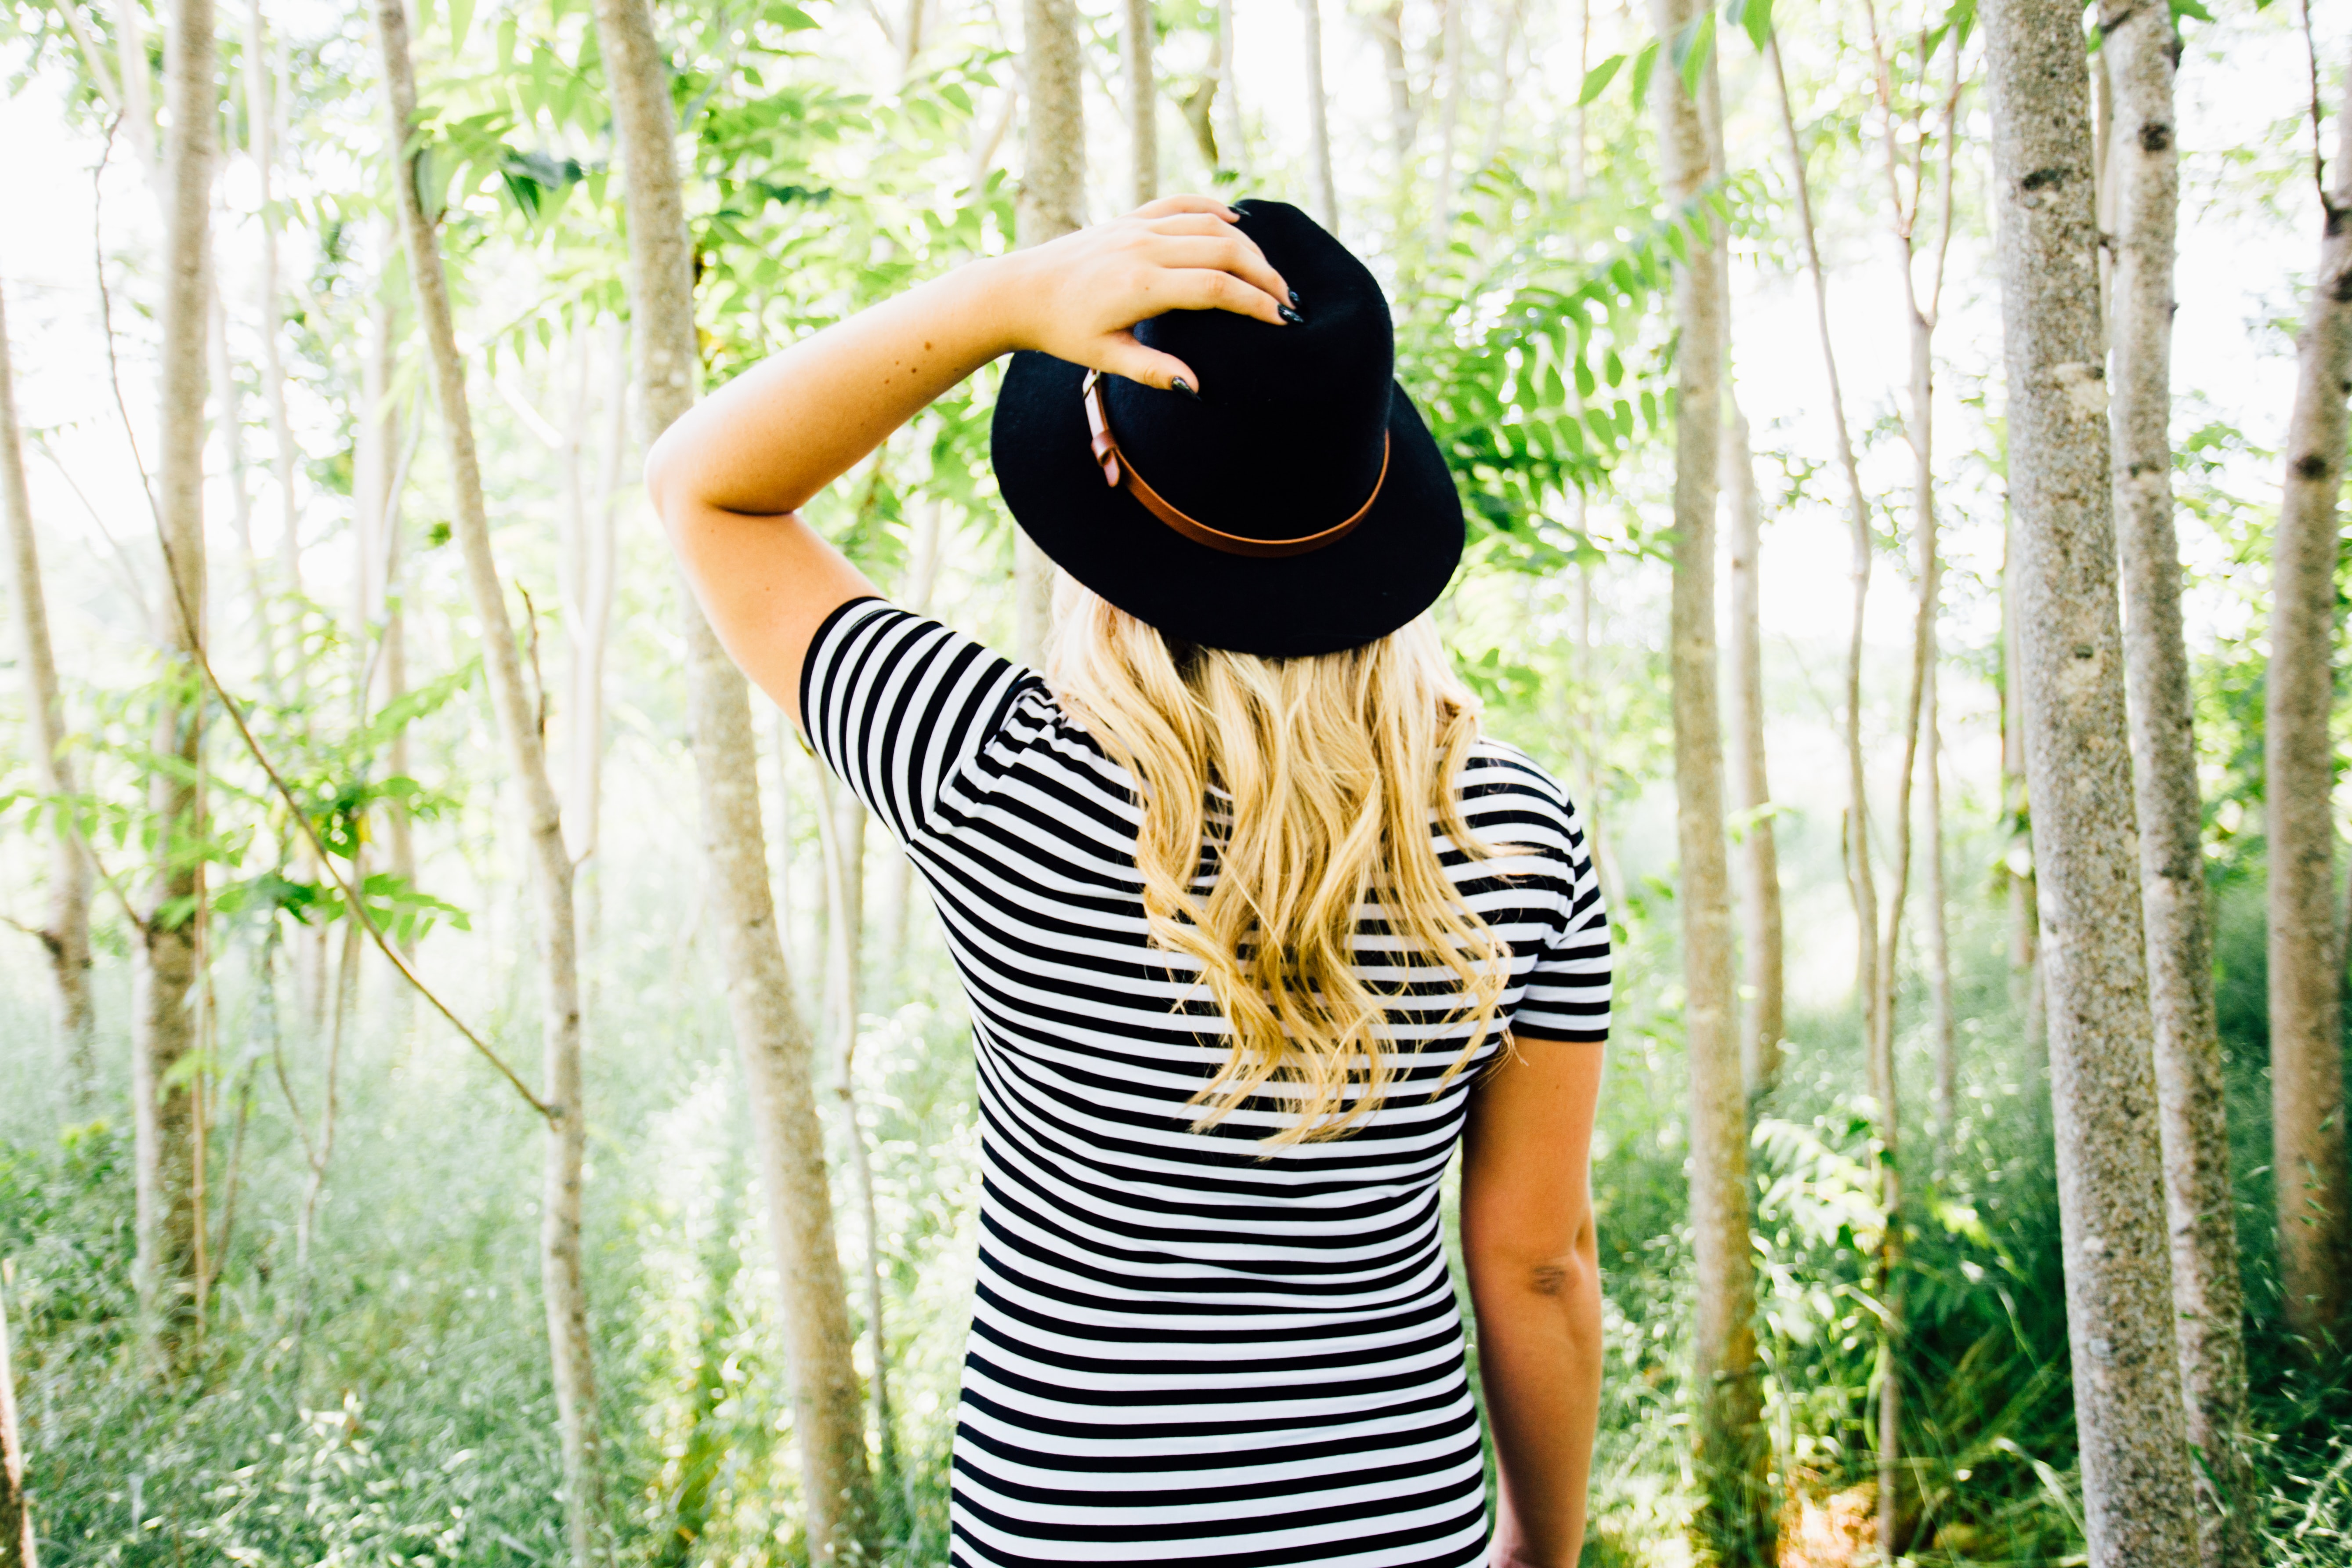 woman in black and white striped crew-neck shirt surrounded by trees during daytime